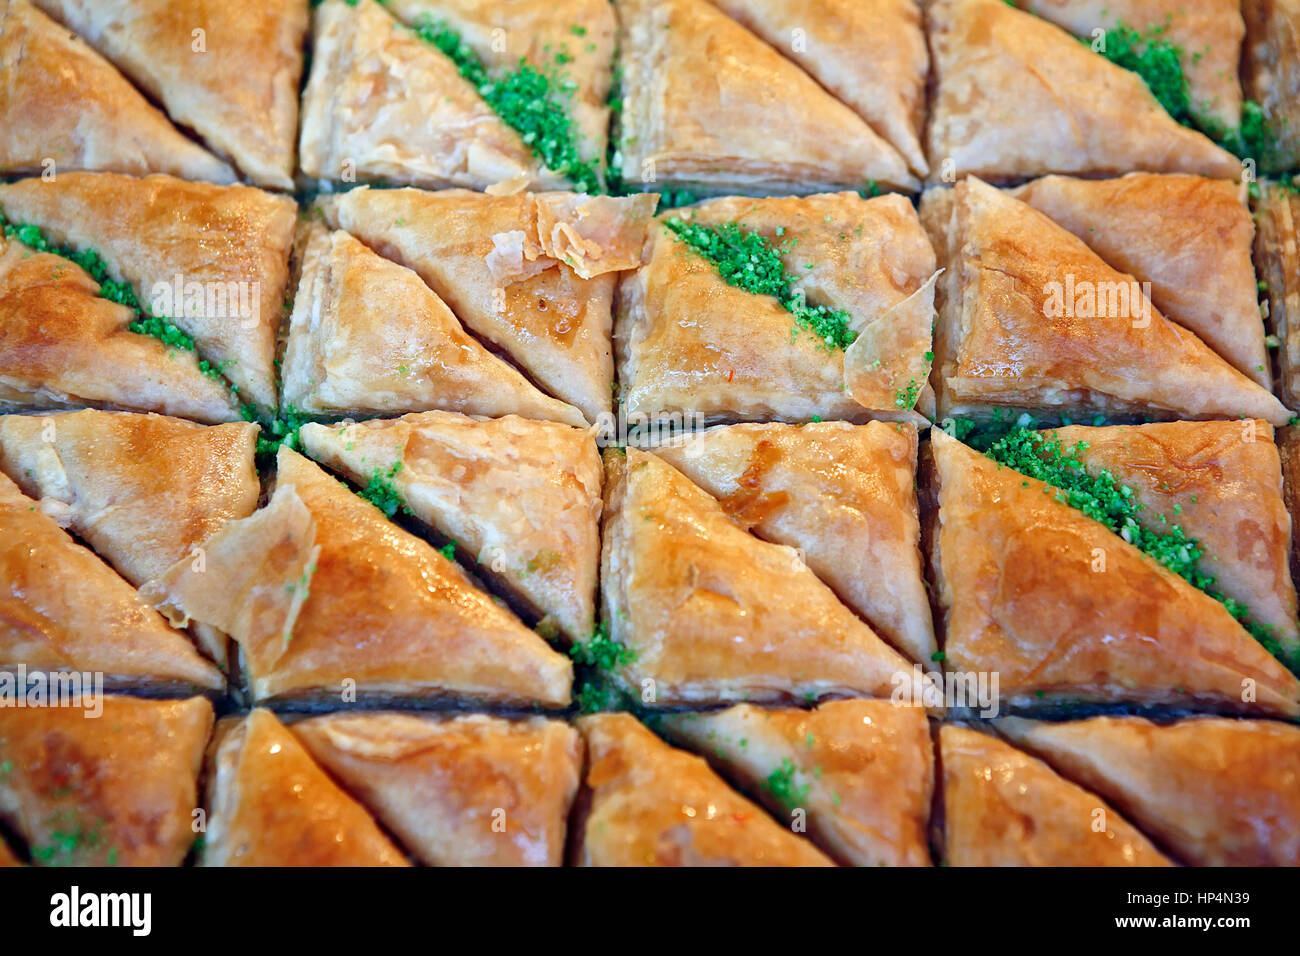 close up pastries at shop in carmel market, tel aviv, israel Stock Photo